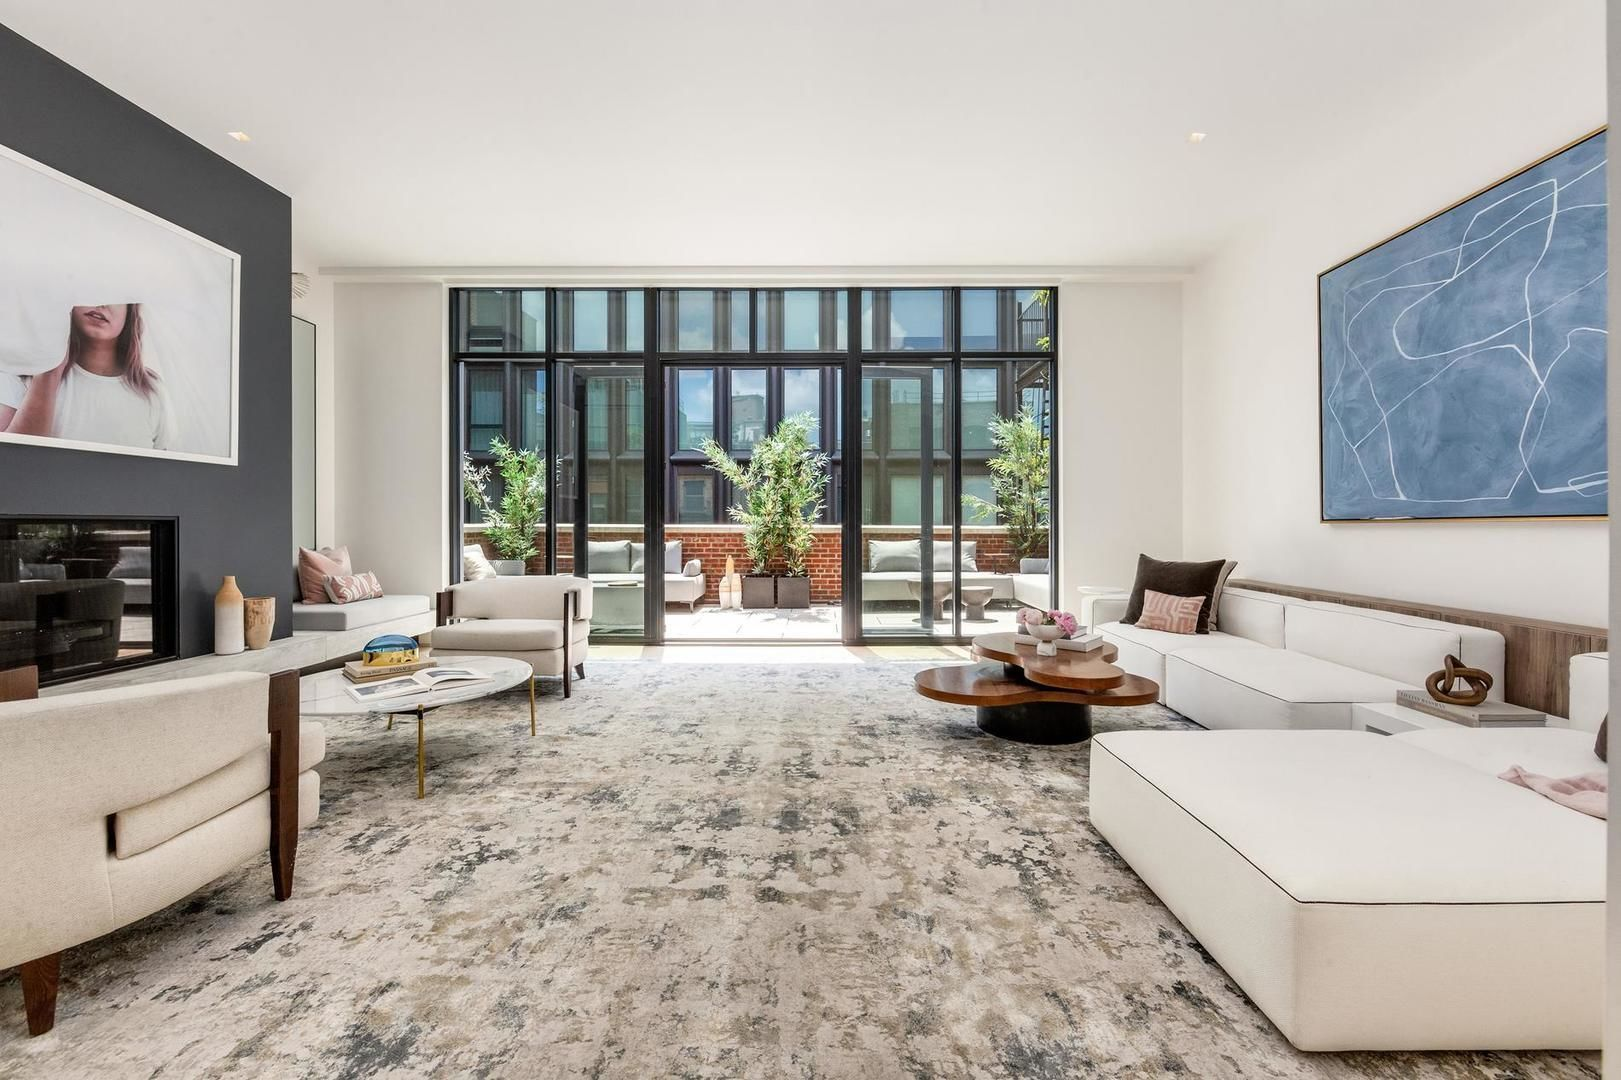 Apartment for sale at 41 Great Jones Street, Apt PENTHOUSE